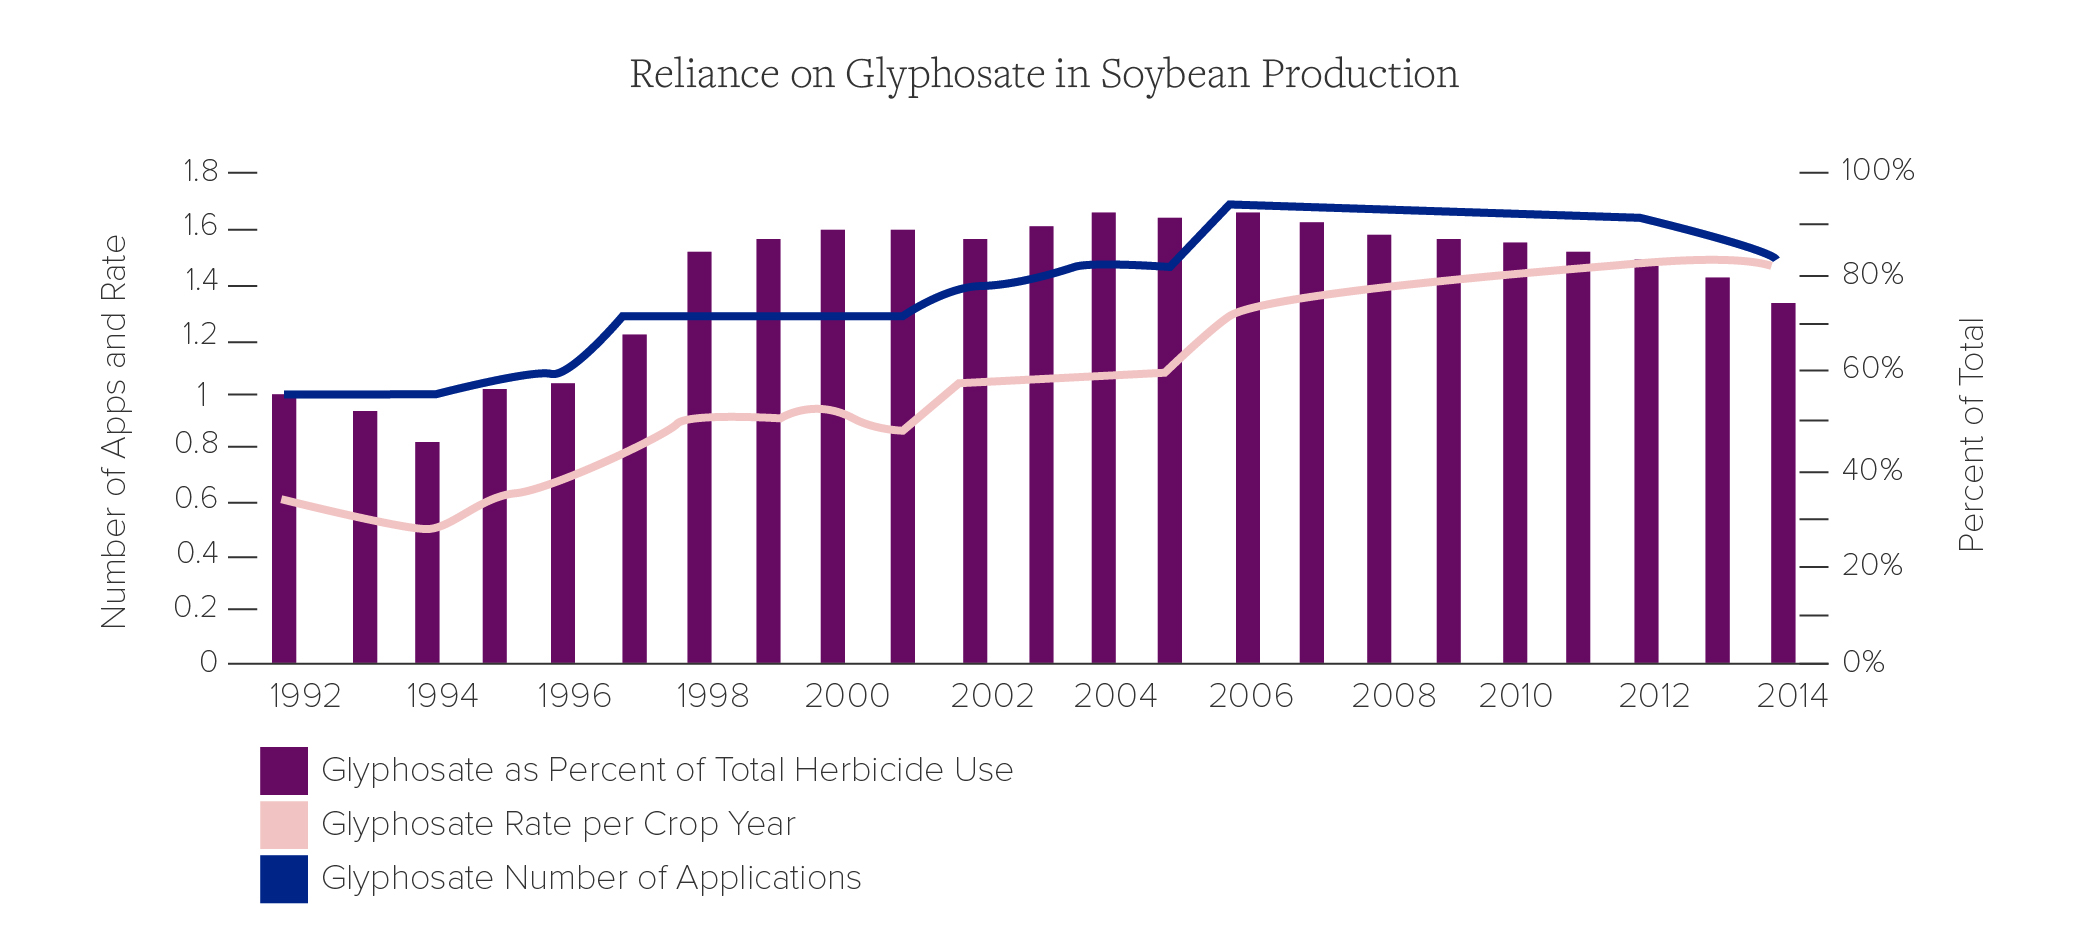 Reliance on Glyphosate in Soybean Production